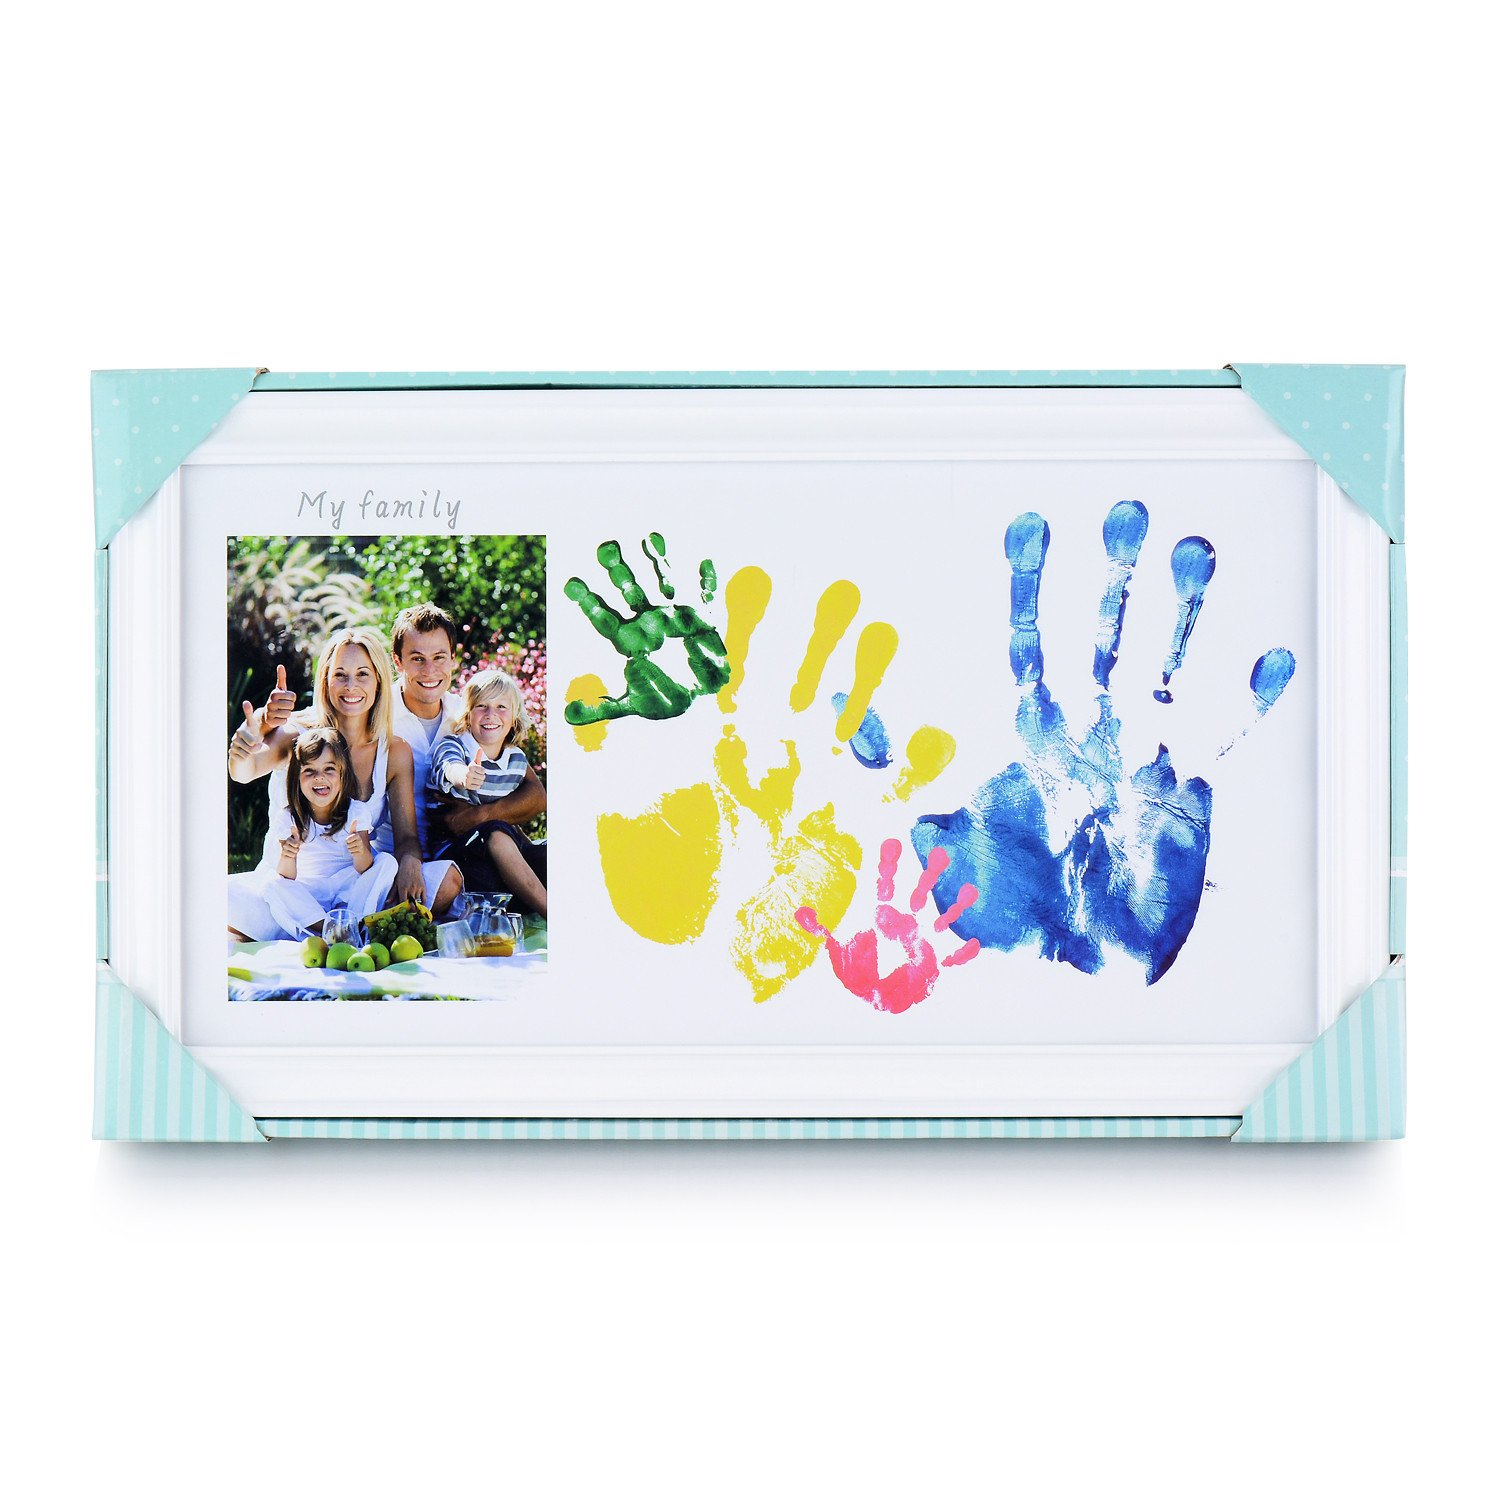 DIY Family Photo+ Family/Baby Handprints/Footprints Kit with 10 X 17'' Elegant White Wood Picture Frame, Non-Toxic Watercolor Paints, Baby Clean-Touch Ink Pad, Baby Registry Shower Keepsakes Gifts by NWK (Image #7)